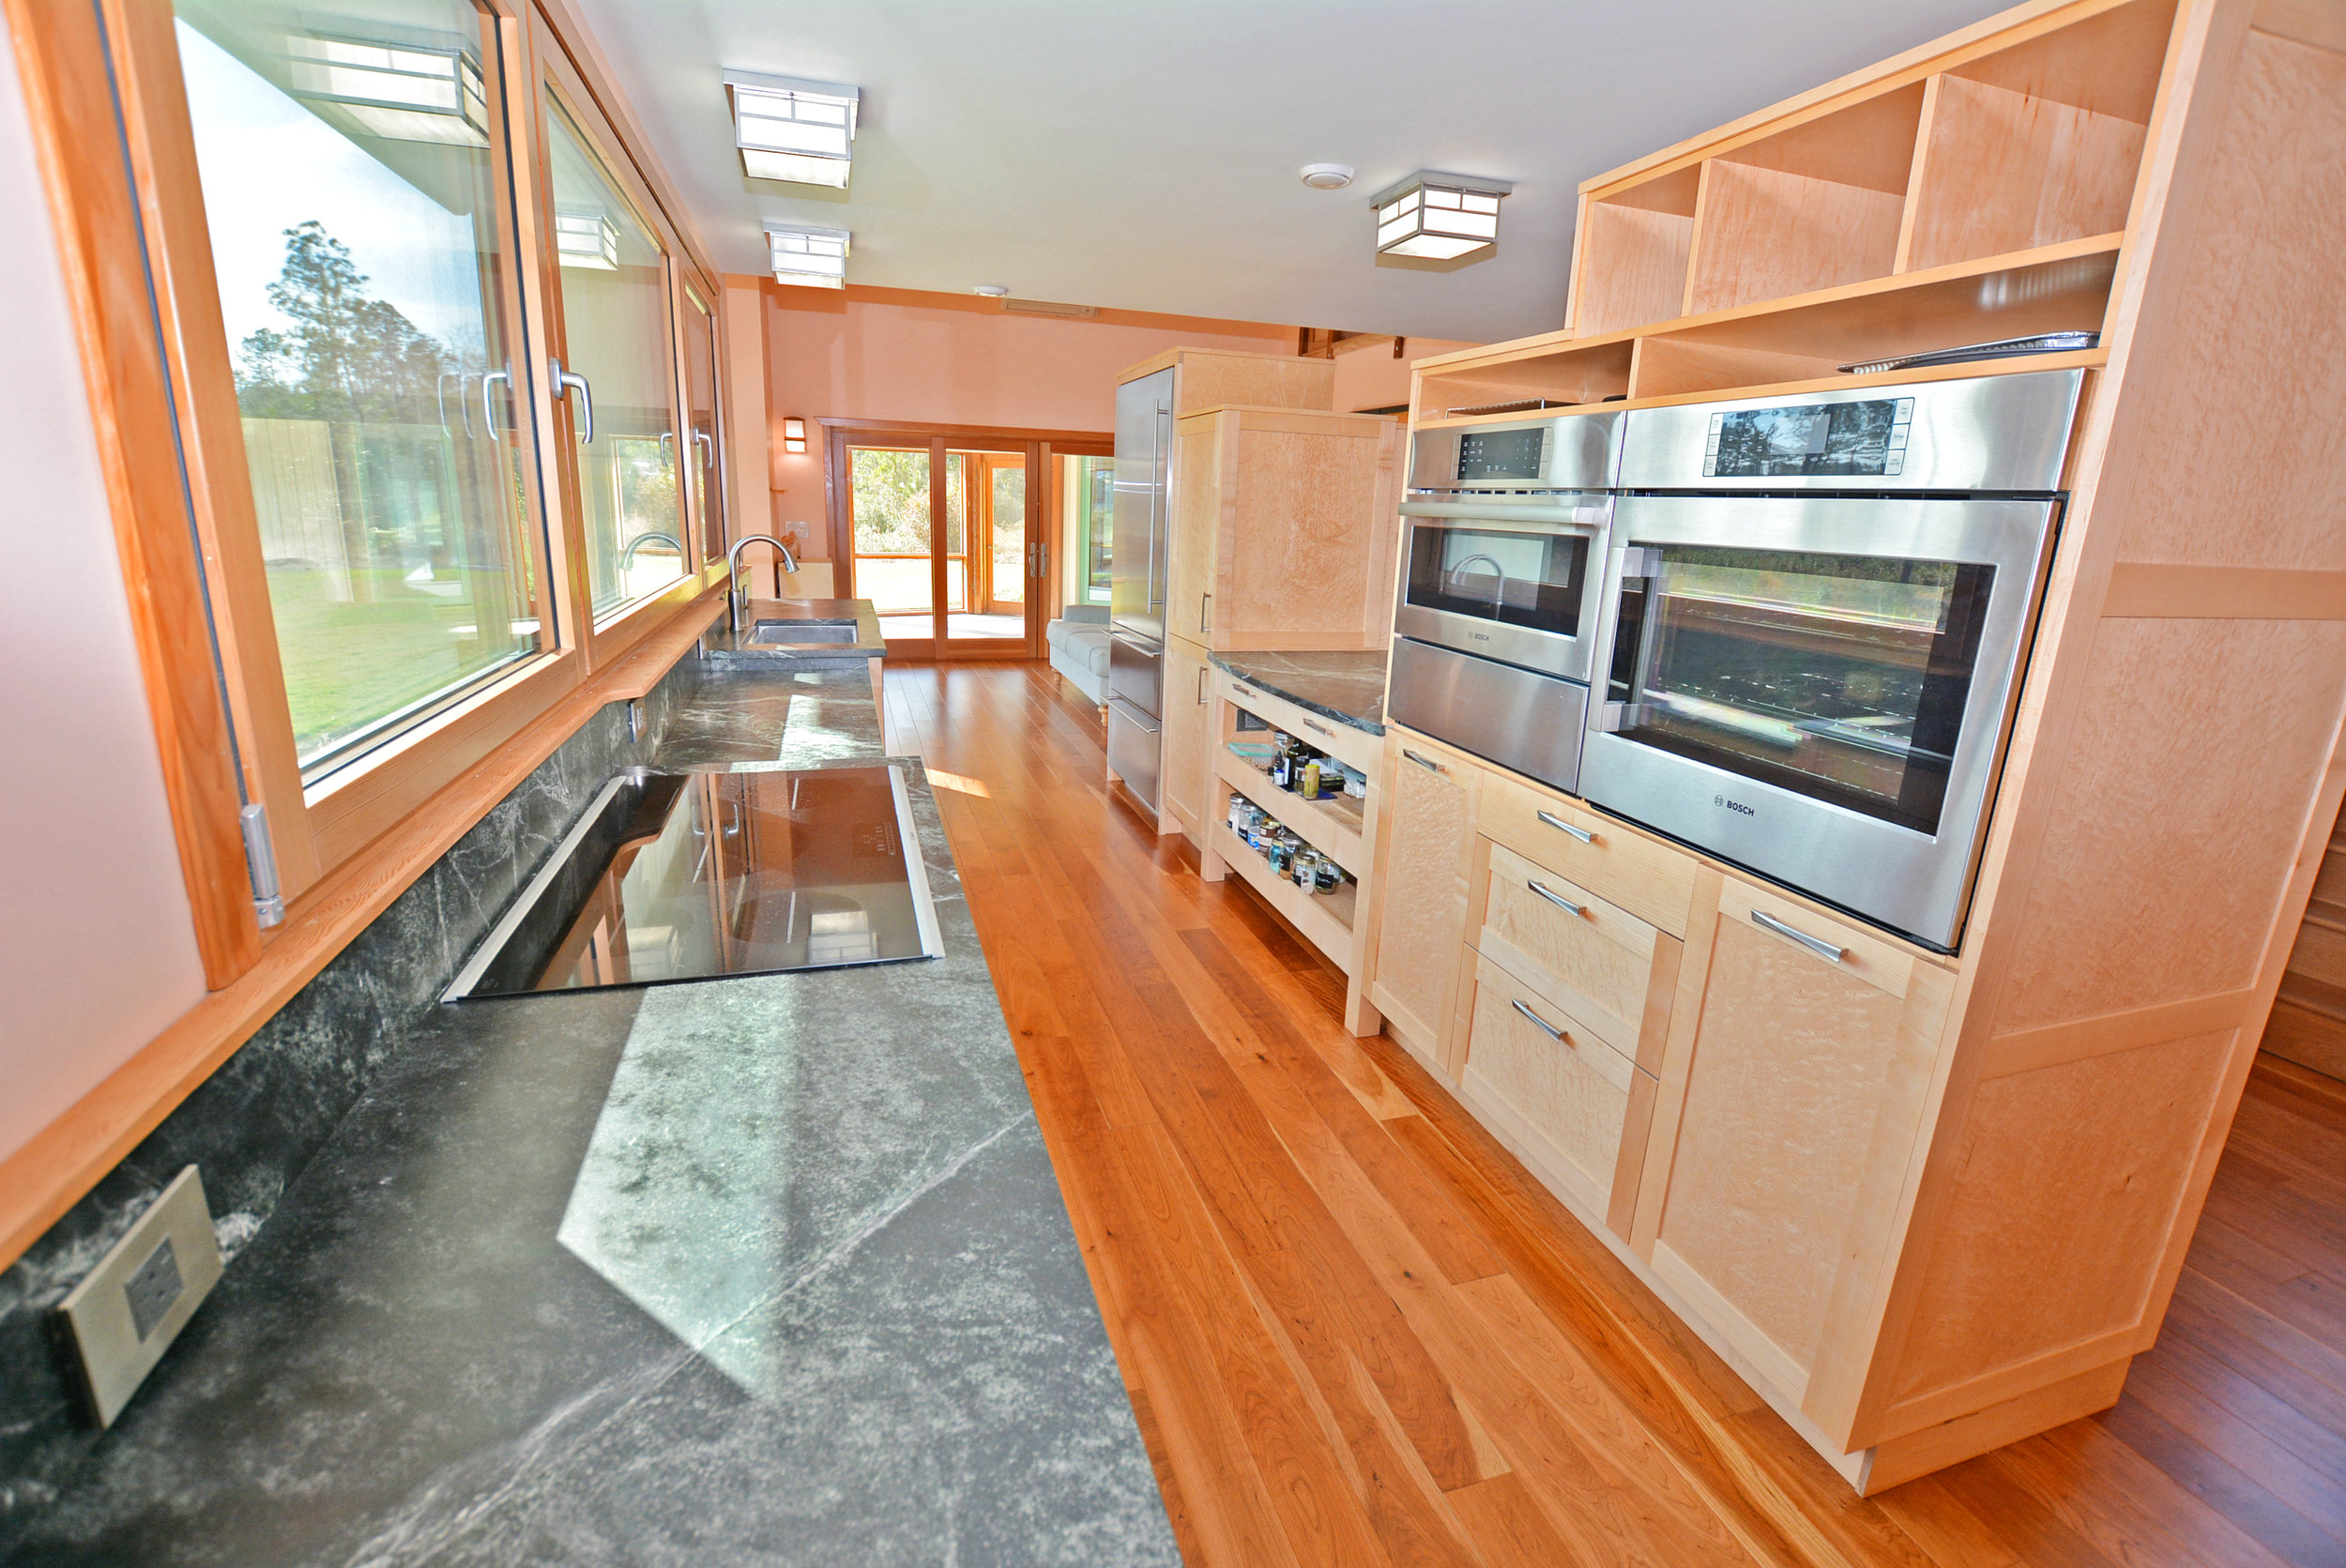 The main part of the kitchen.